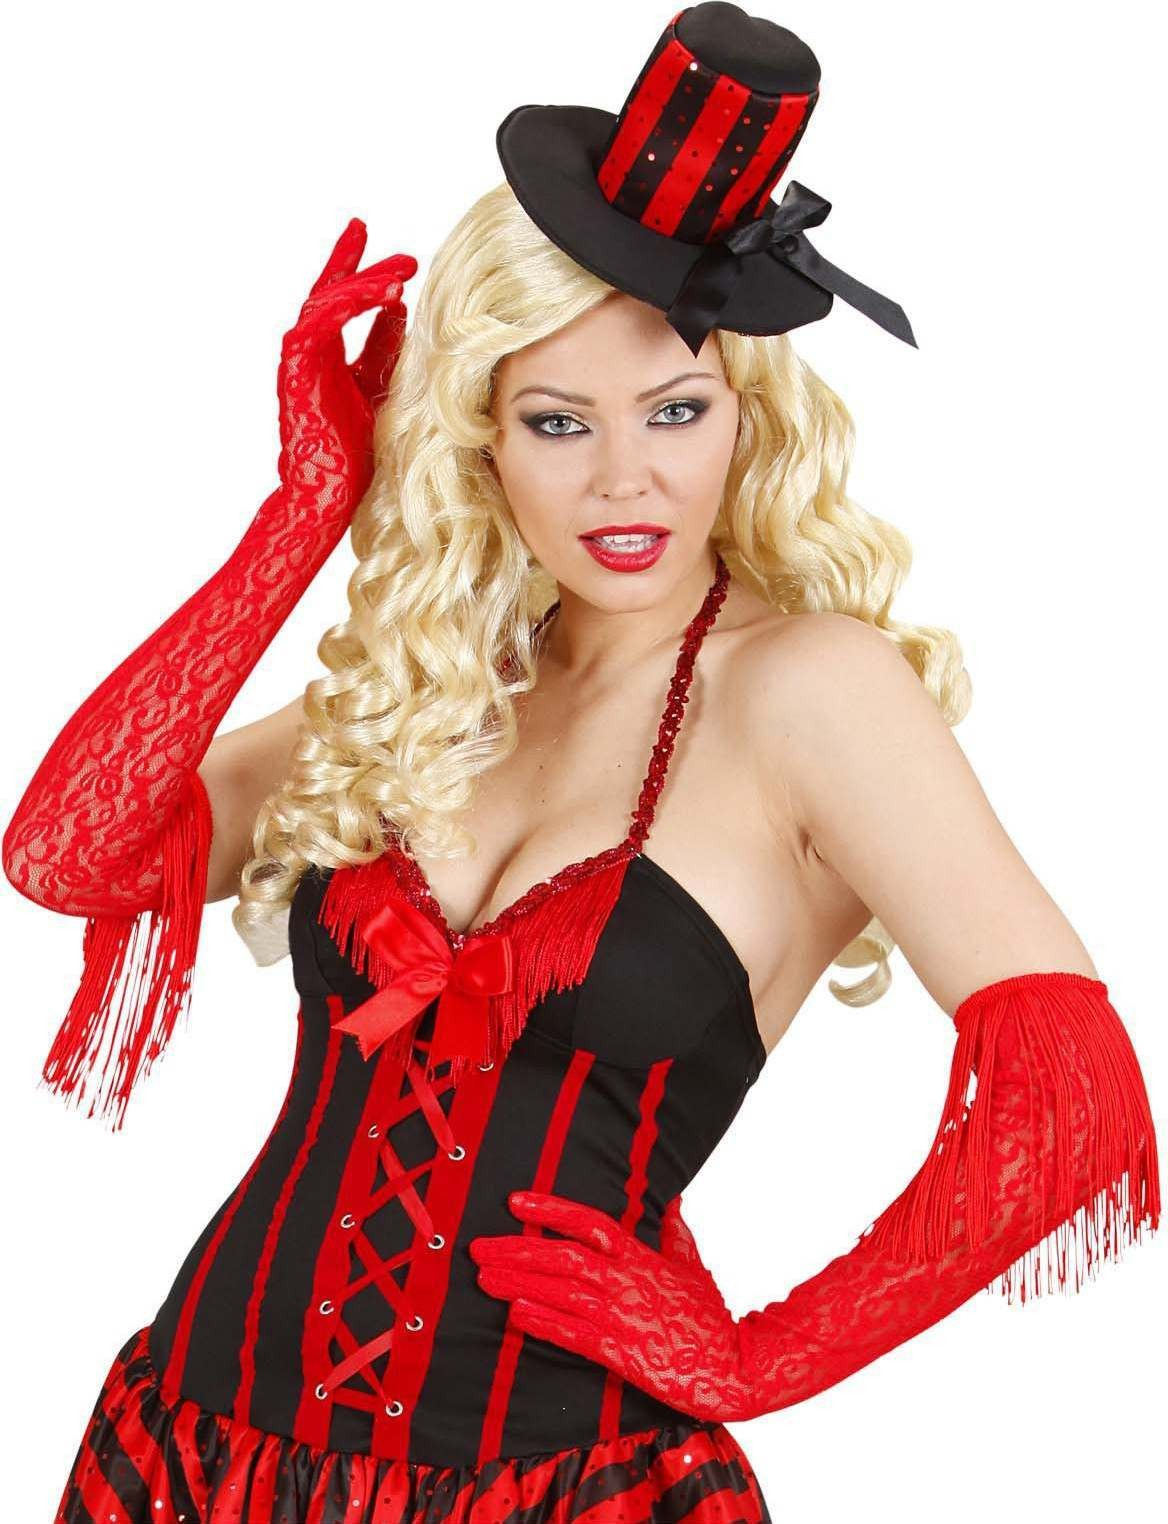 Ladies Red Lace Gloves With Fringes Gloves - (Red)